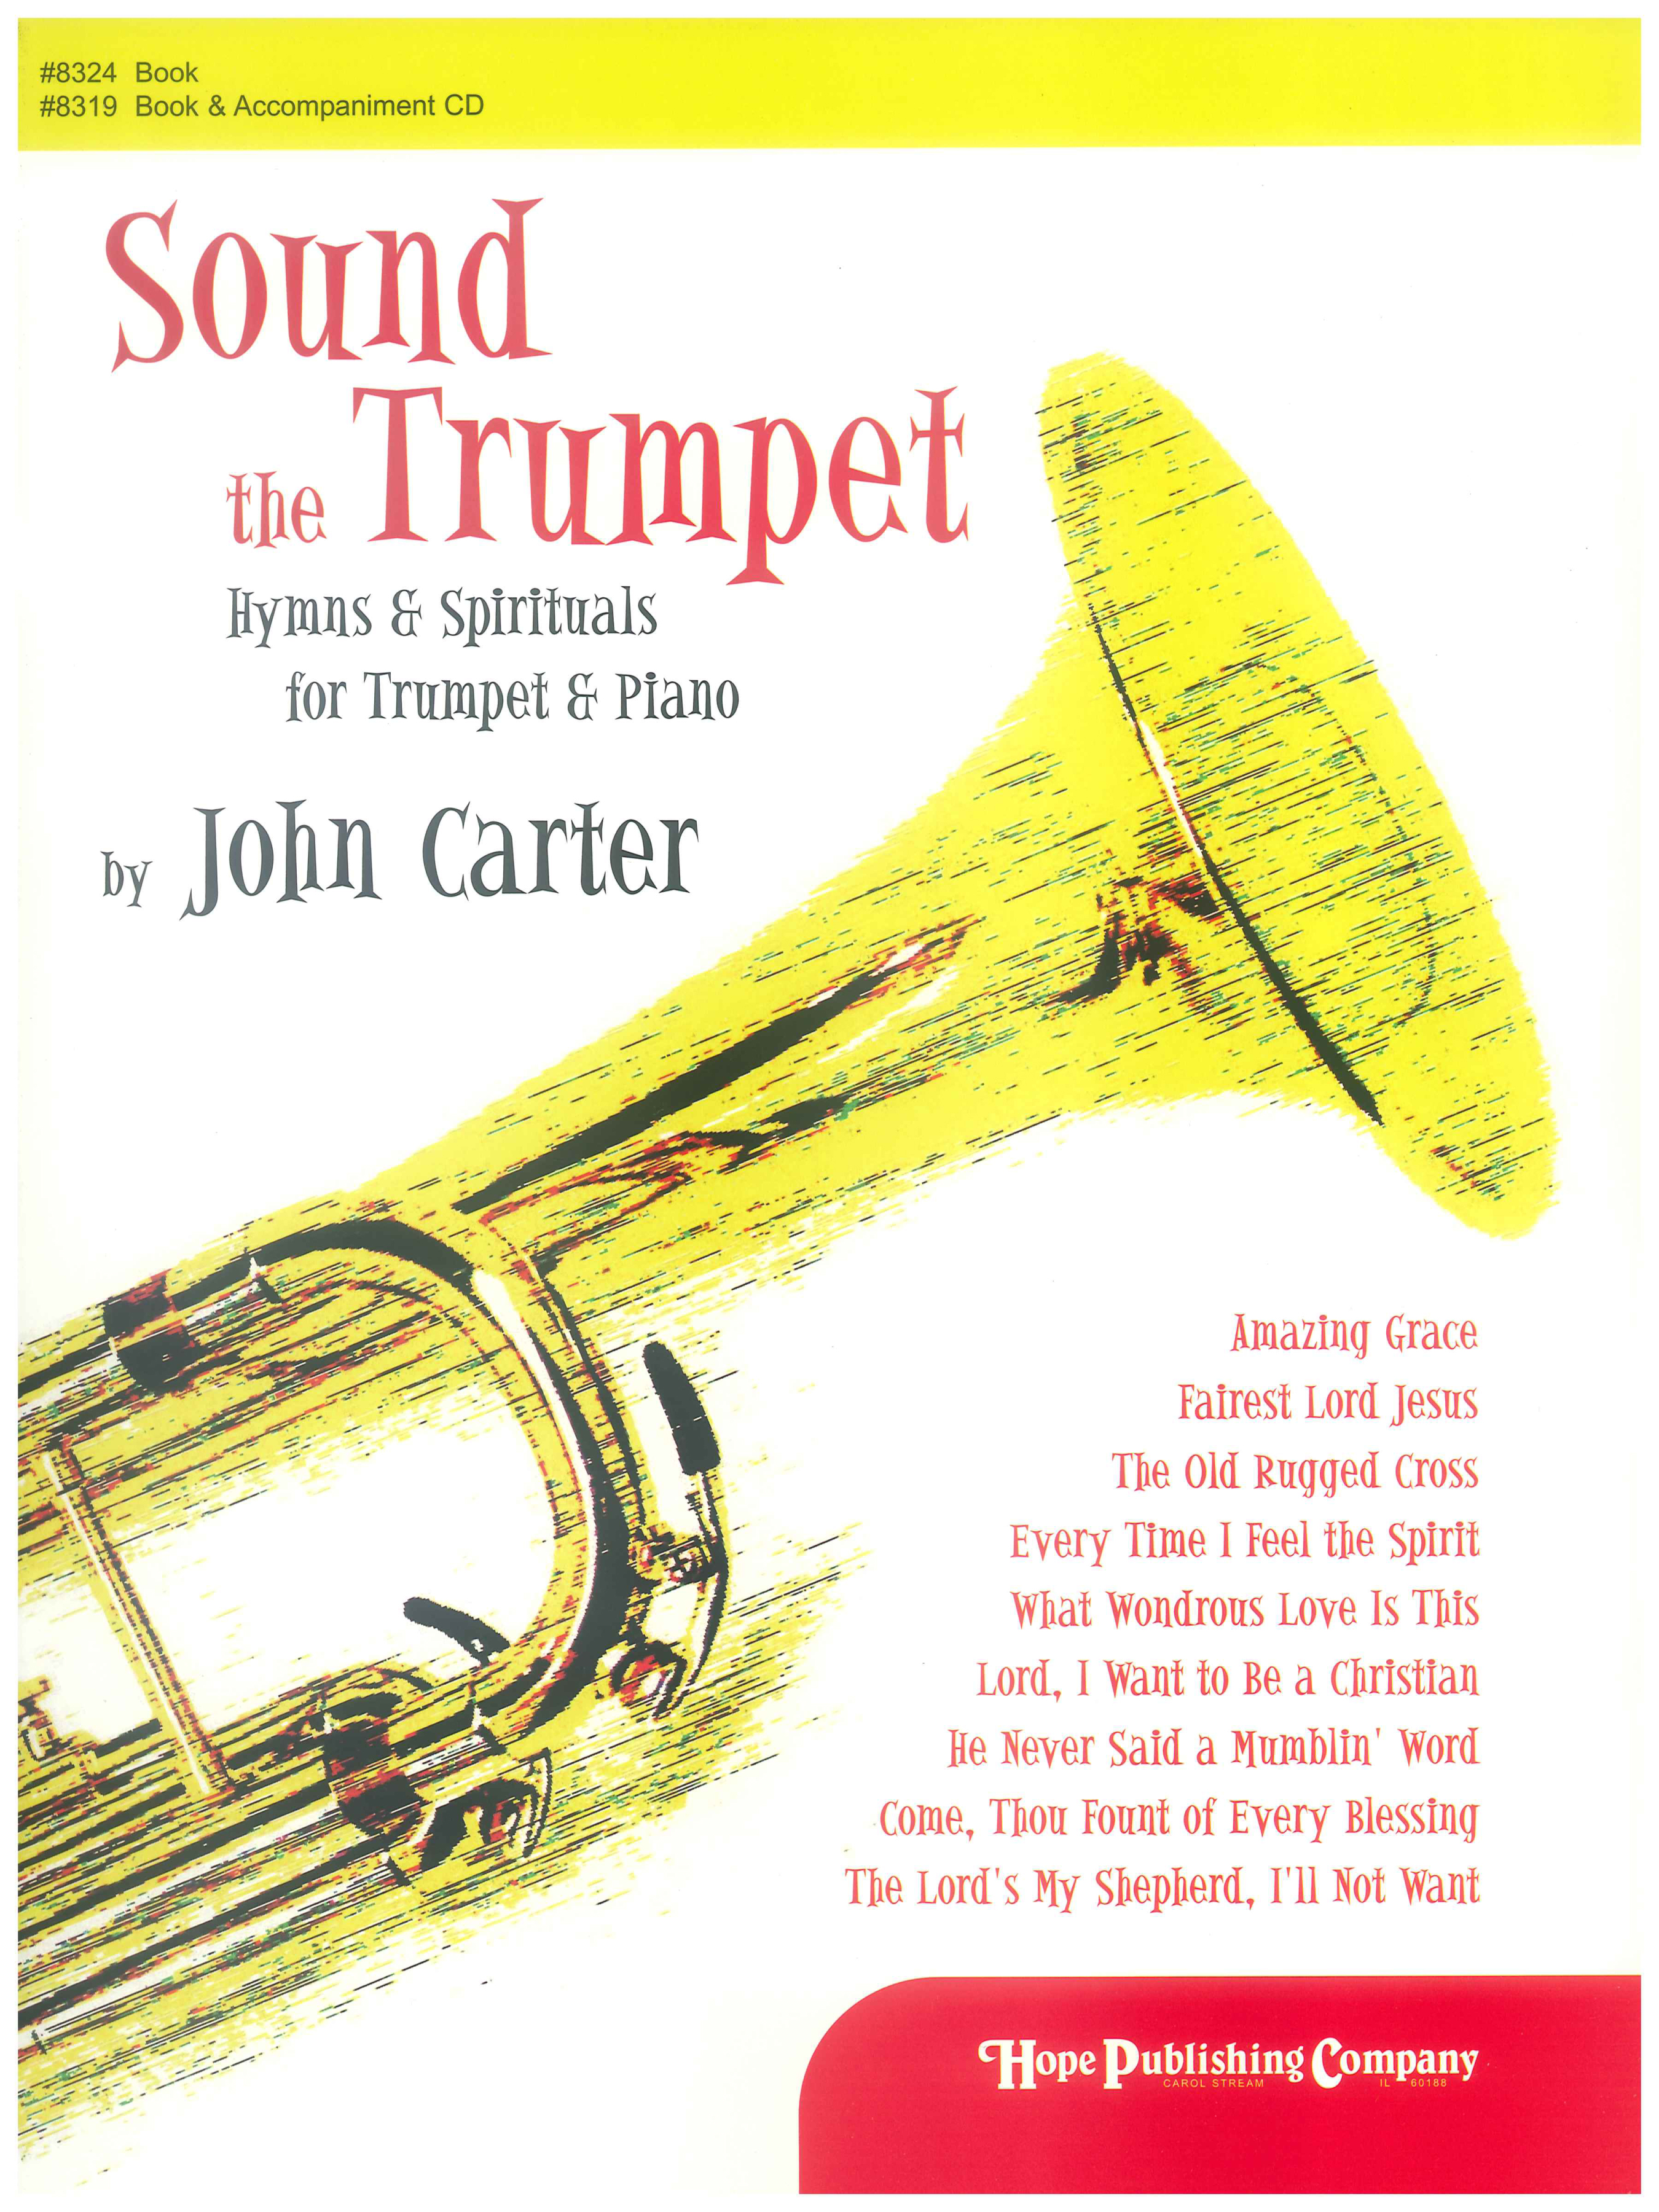 Sound the Trumpet: Hymns and Spirituals for Trumpet and Piano (Book) Cover Image